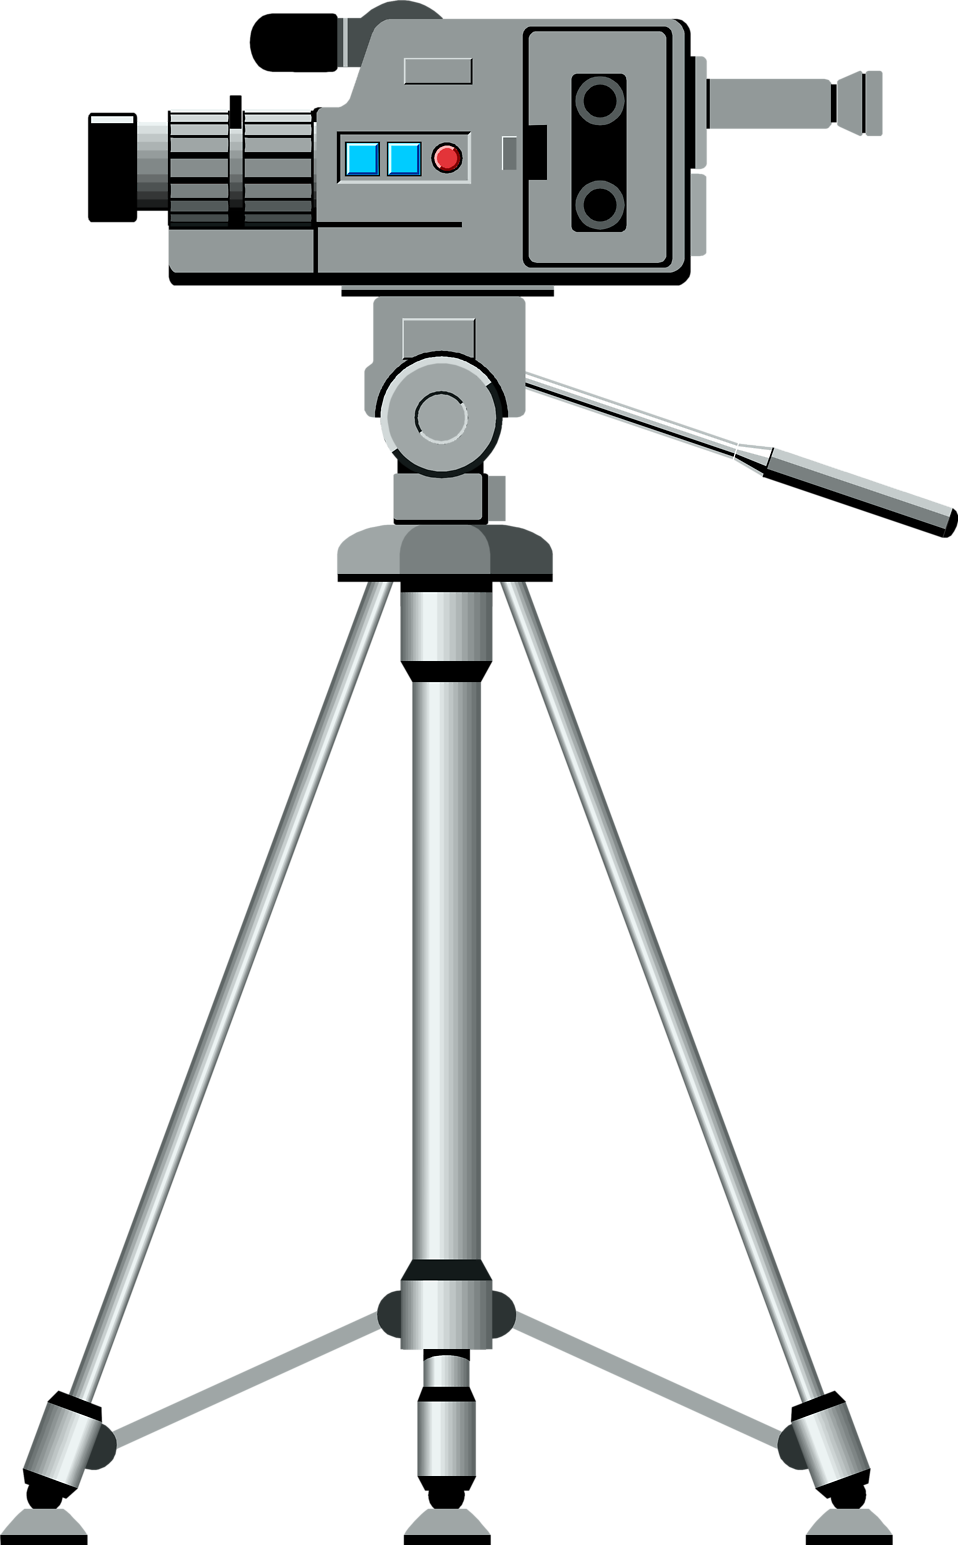 Free Download Of Video Camera On Tripod Icon Clipart image #39014